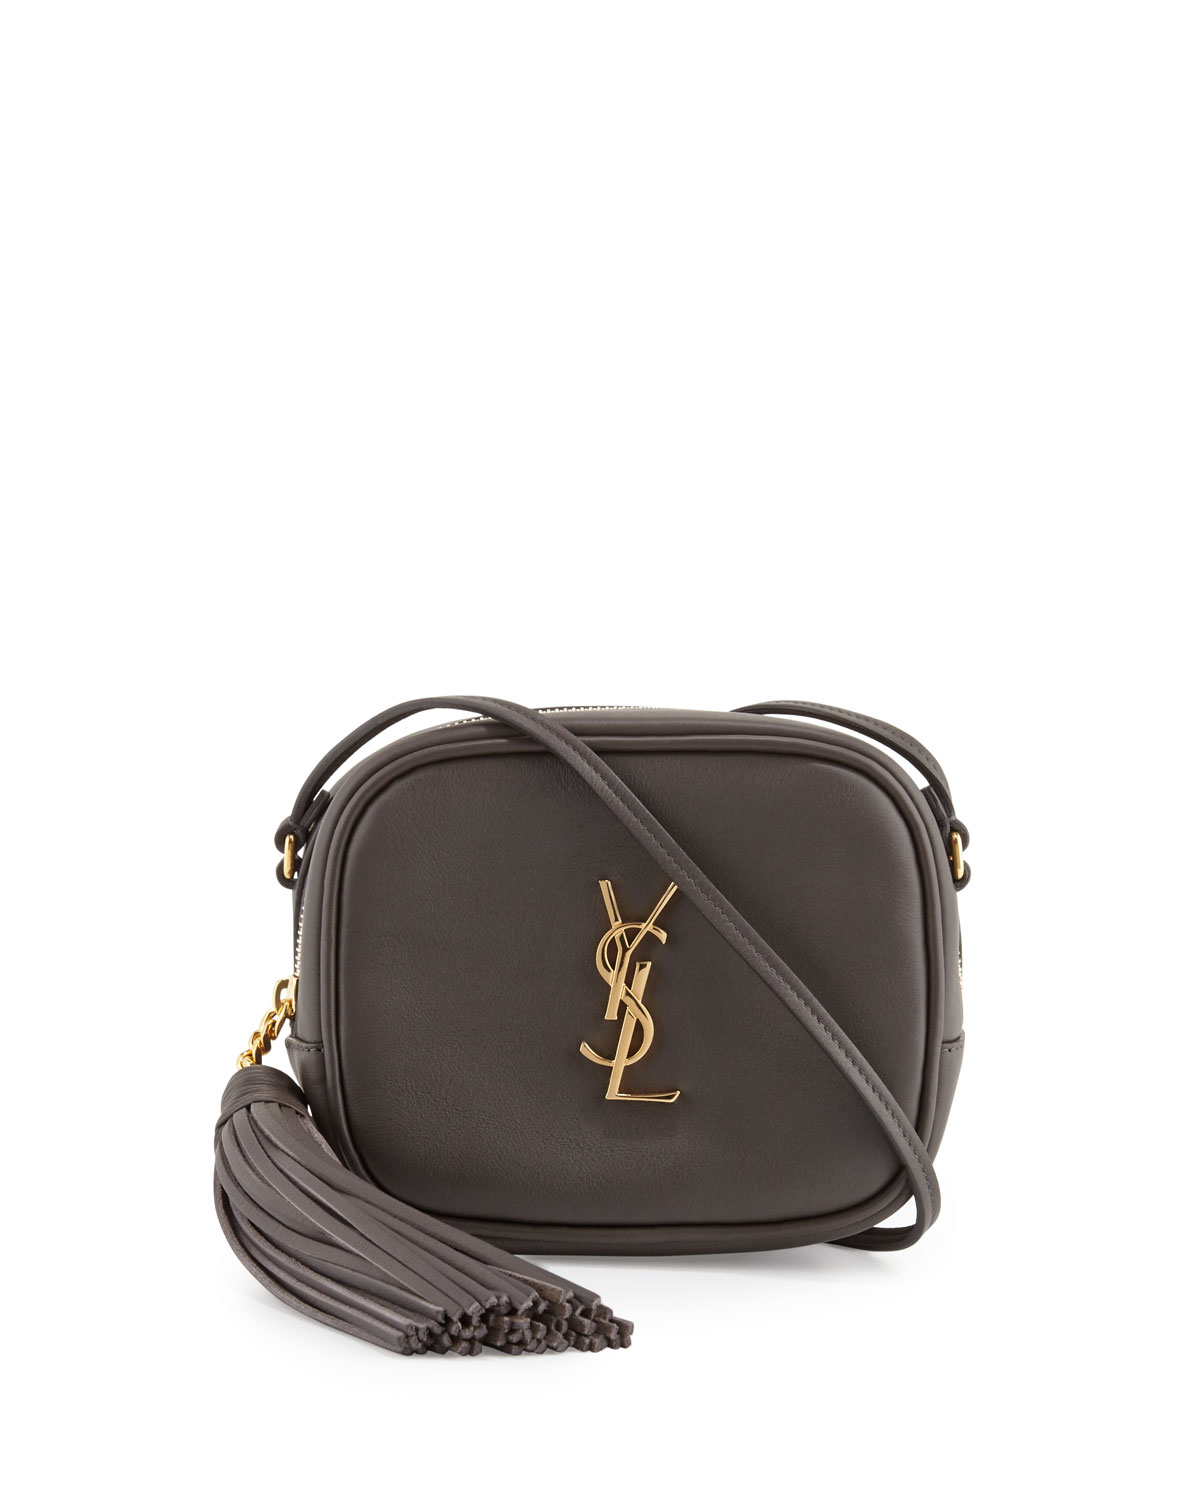 97816d8984 Saint Laurent Monogram Blogger Crossbody Bag